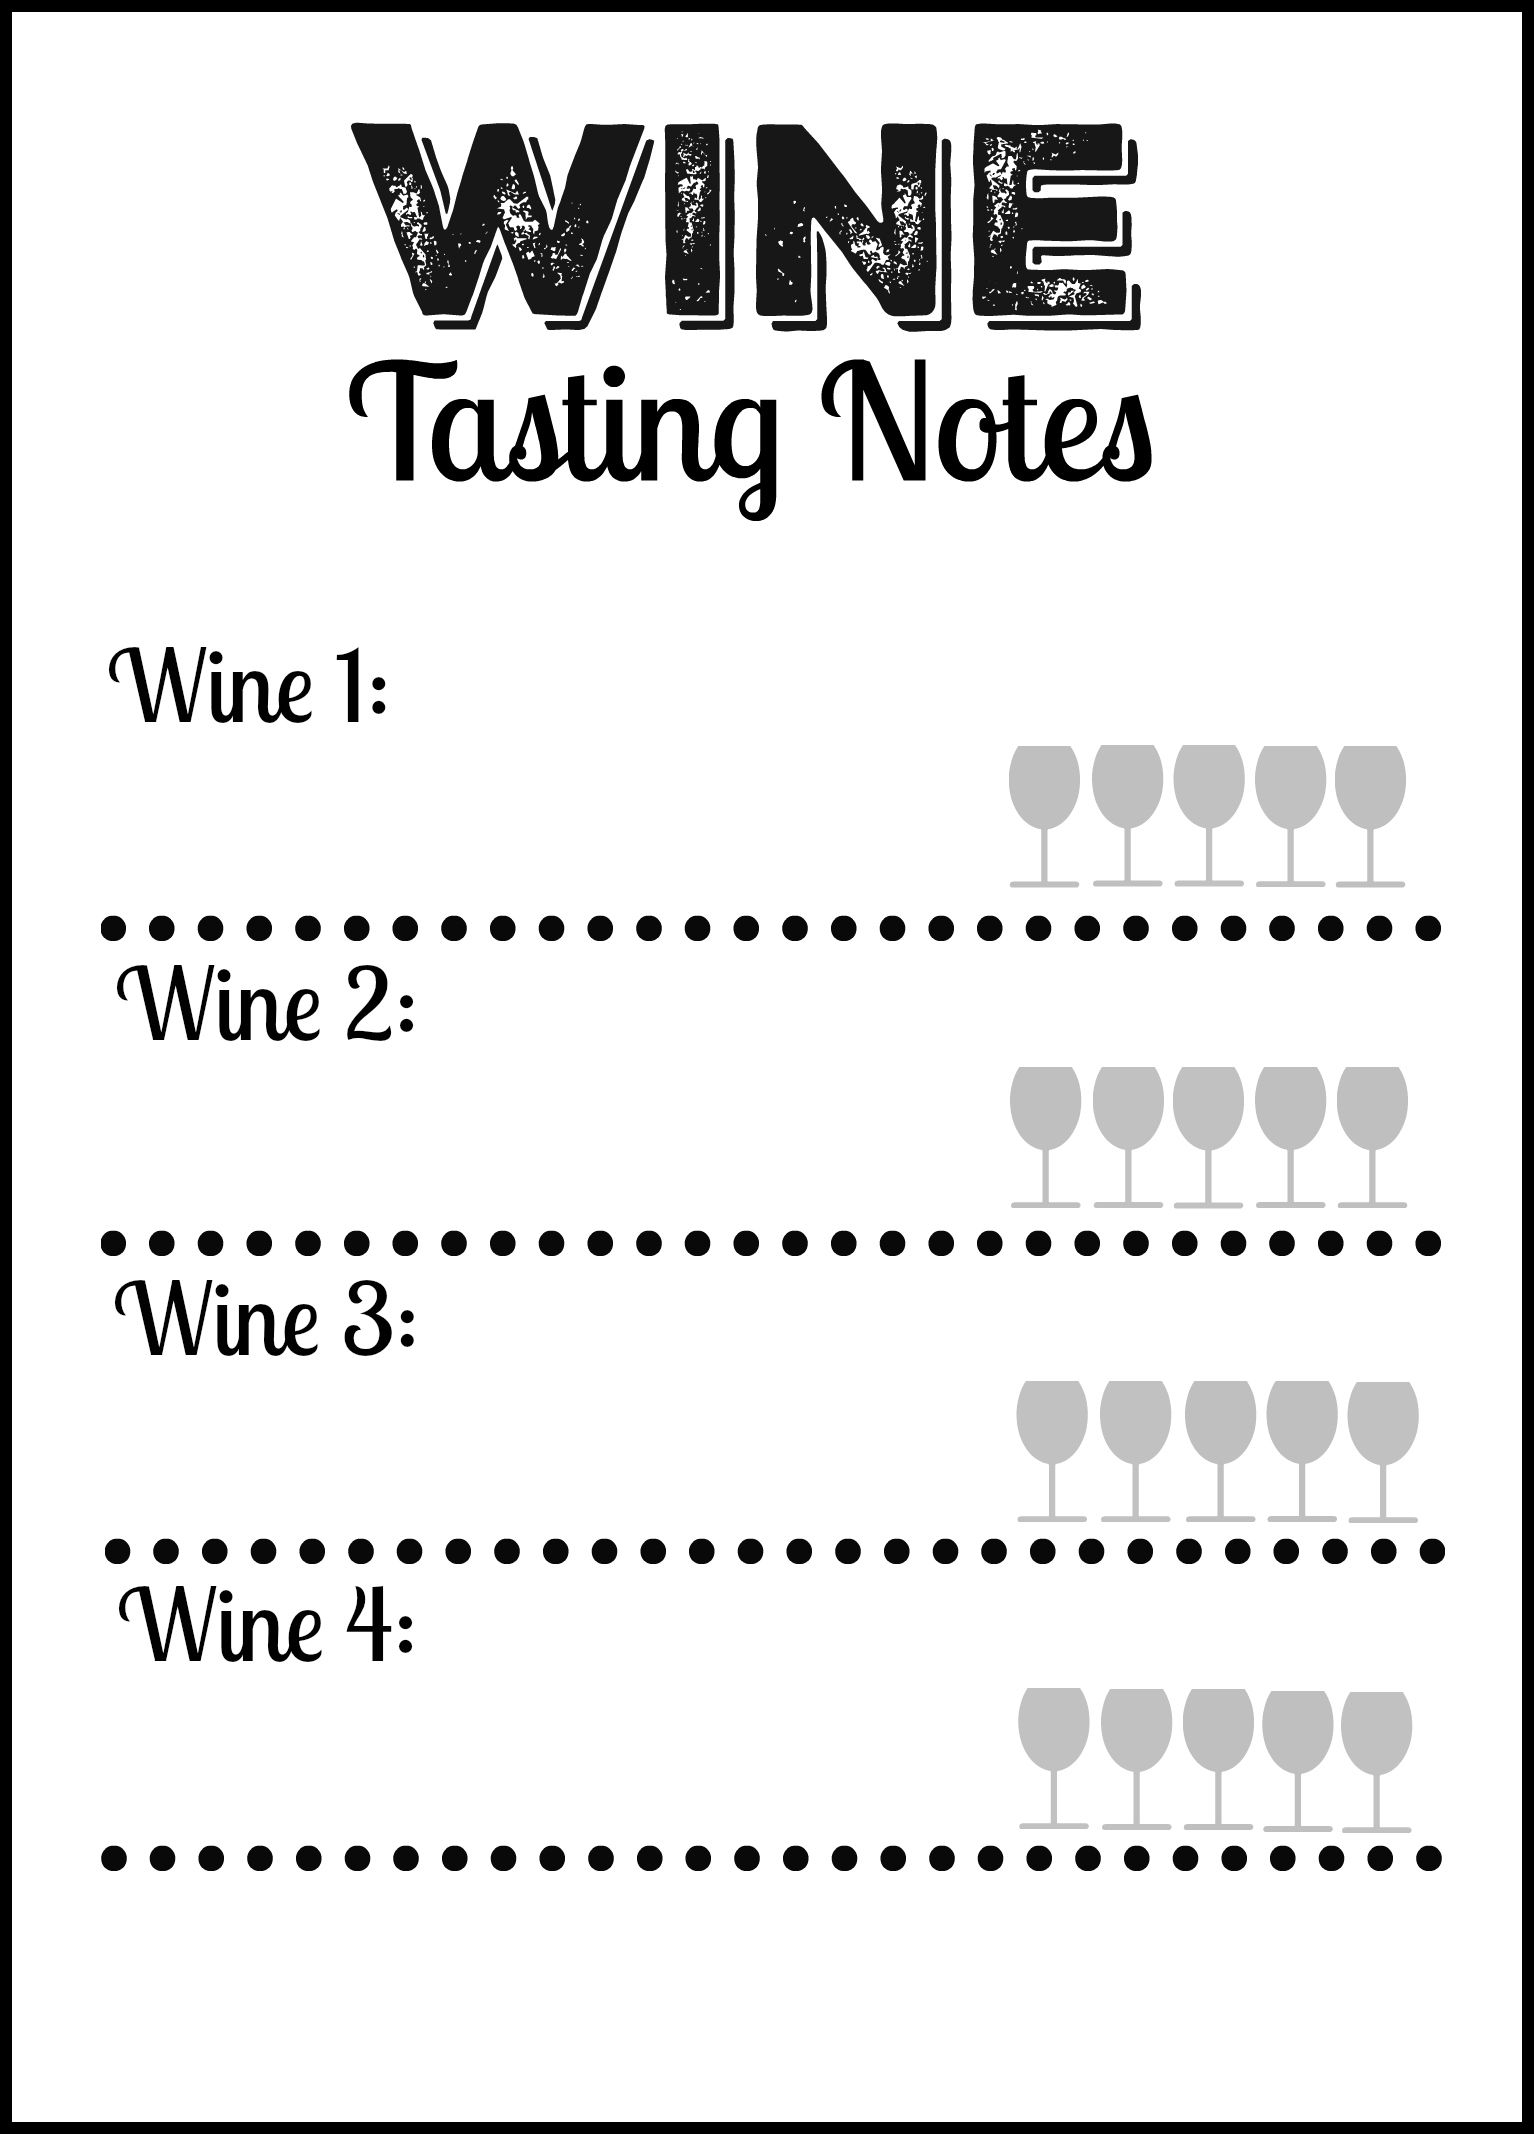 image regarding Wine Tasting Sheets Printable named Wine Tasting Social gathering Free of charge Printable Wine Tasting Notes Card